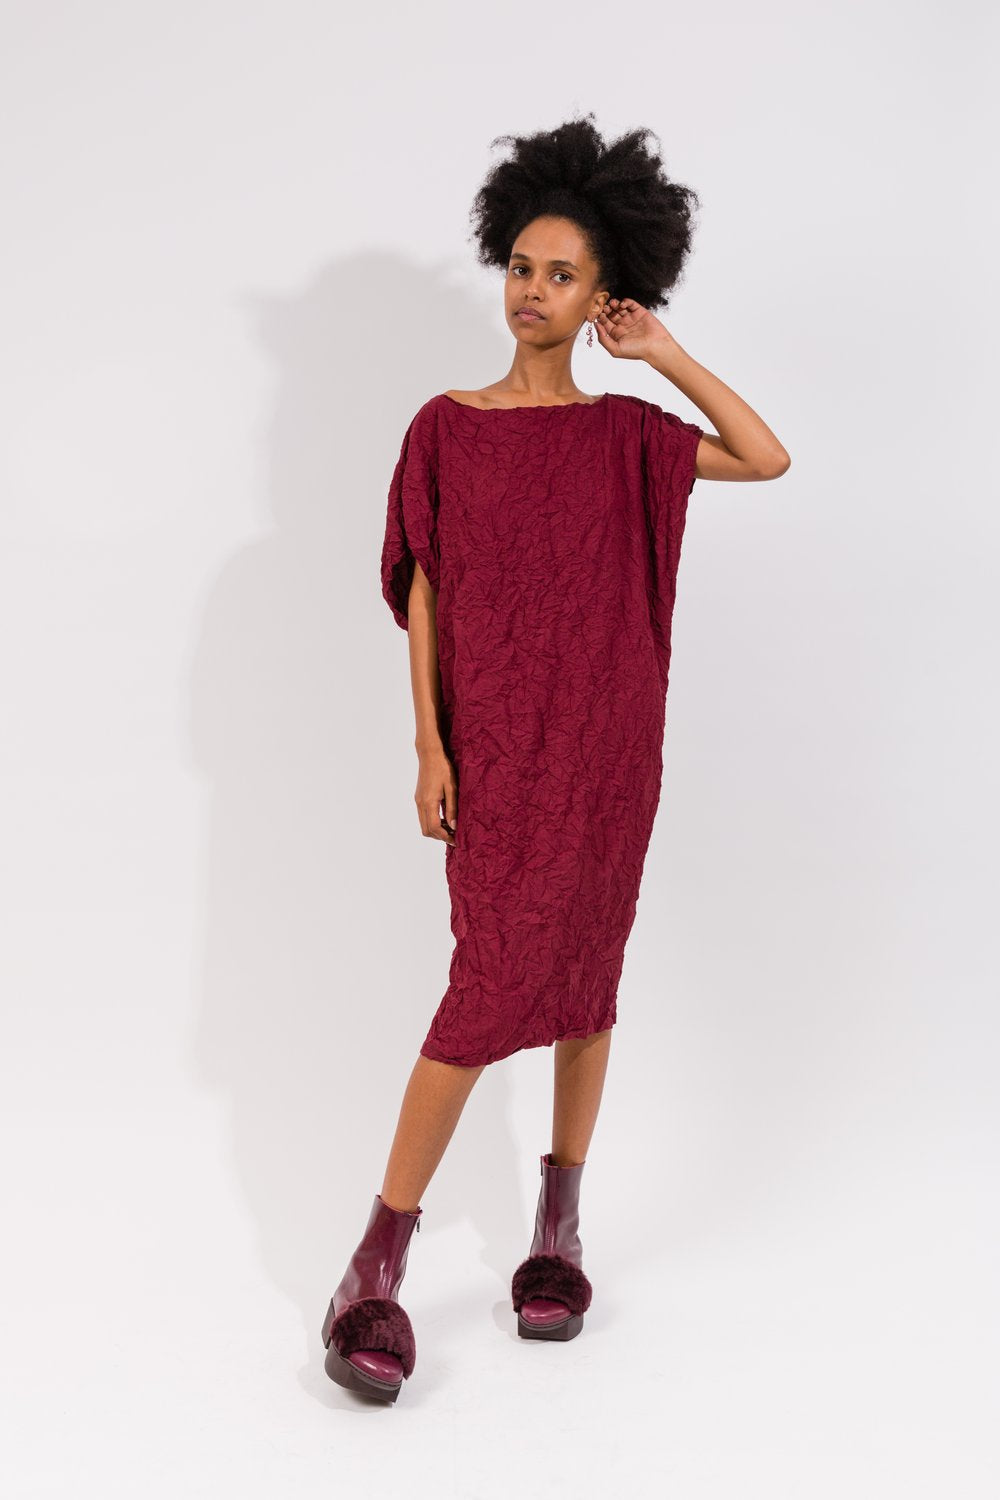 Undesigned | Moth Andy Dress in Xanadu in Burgandy